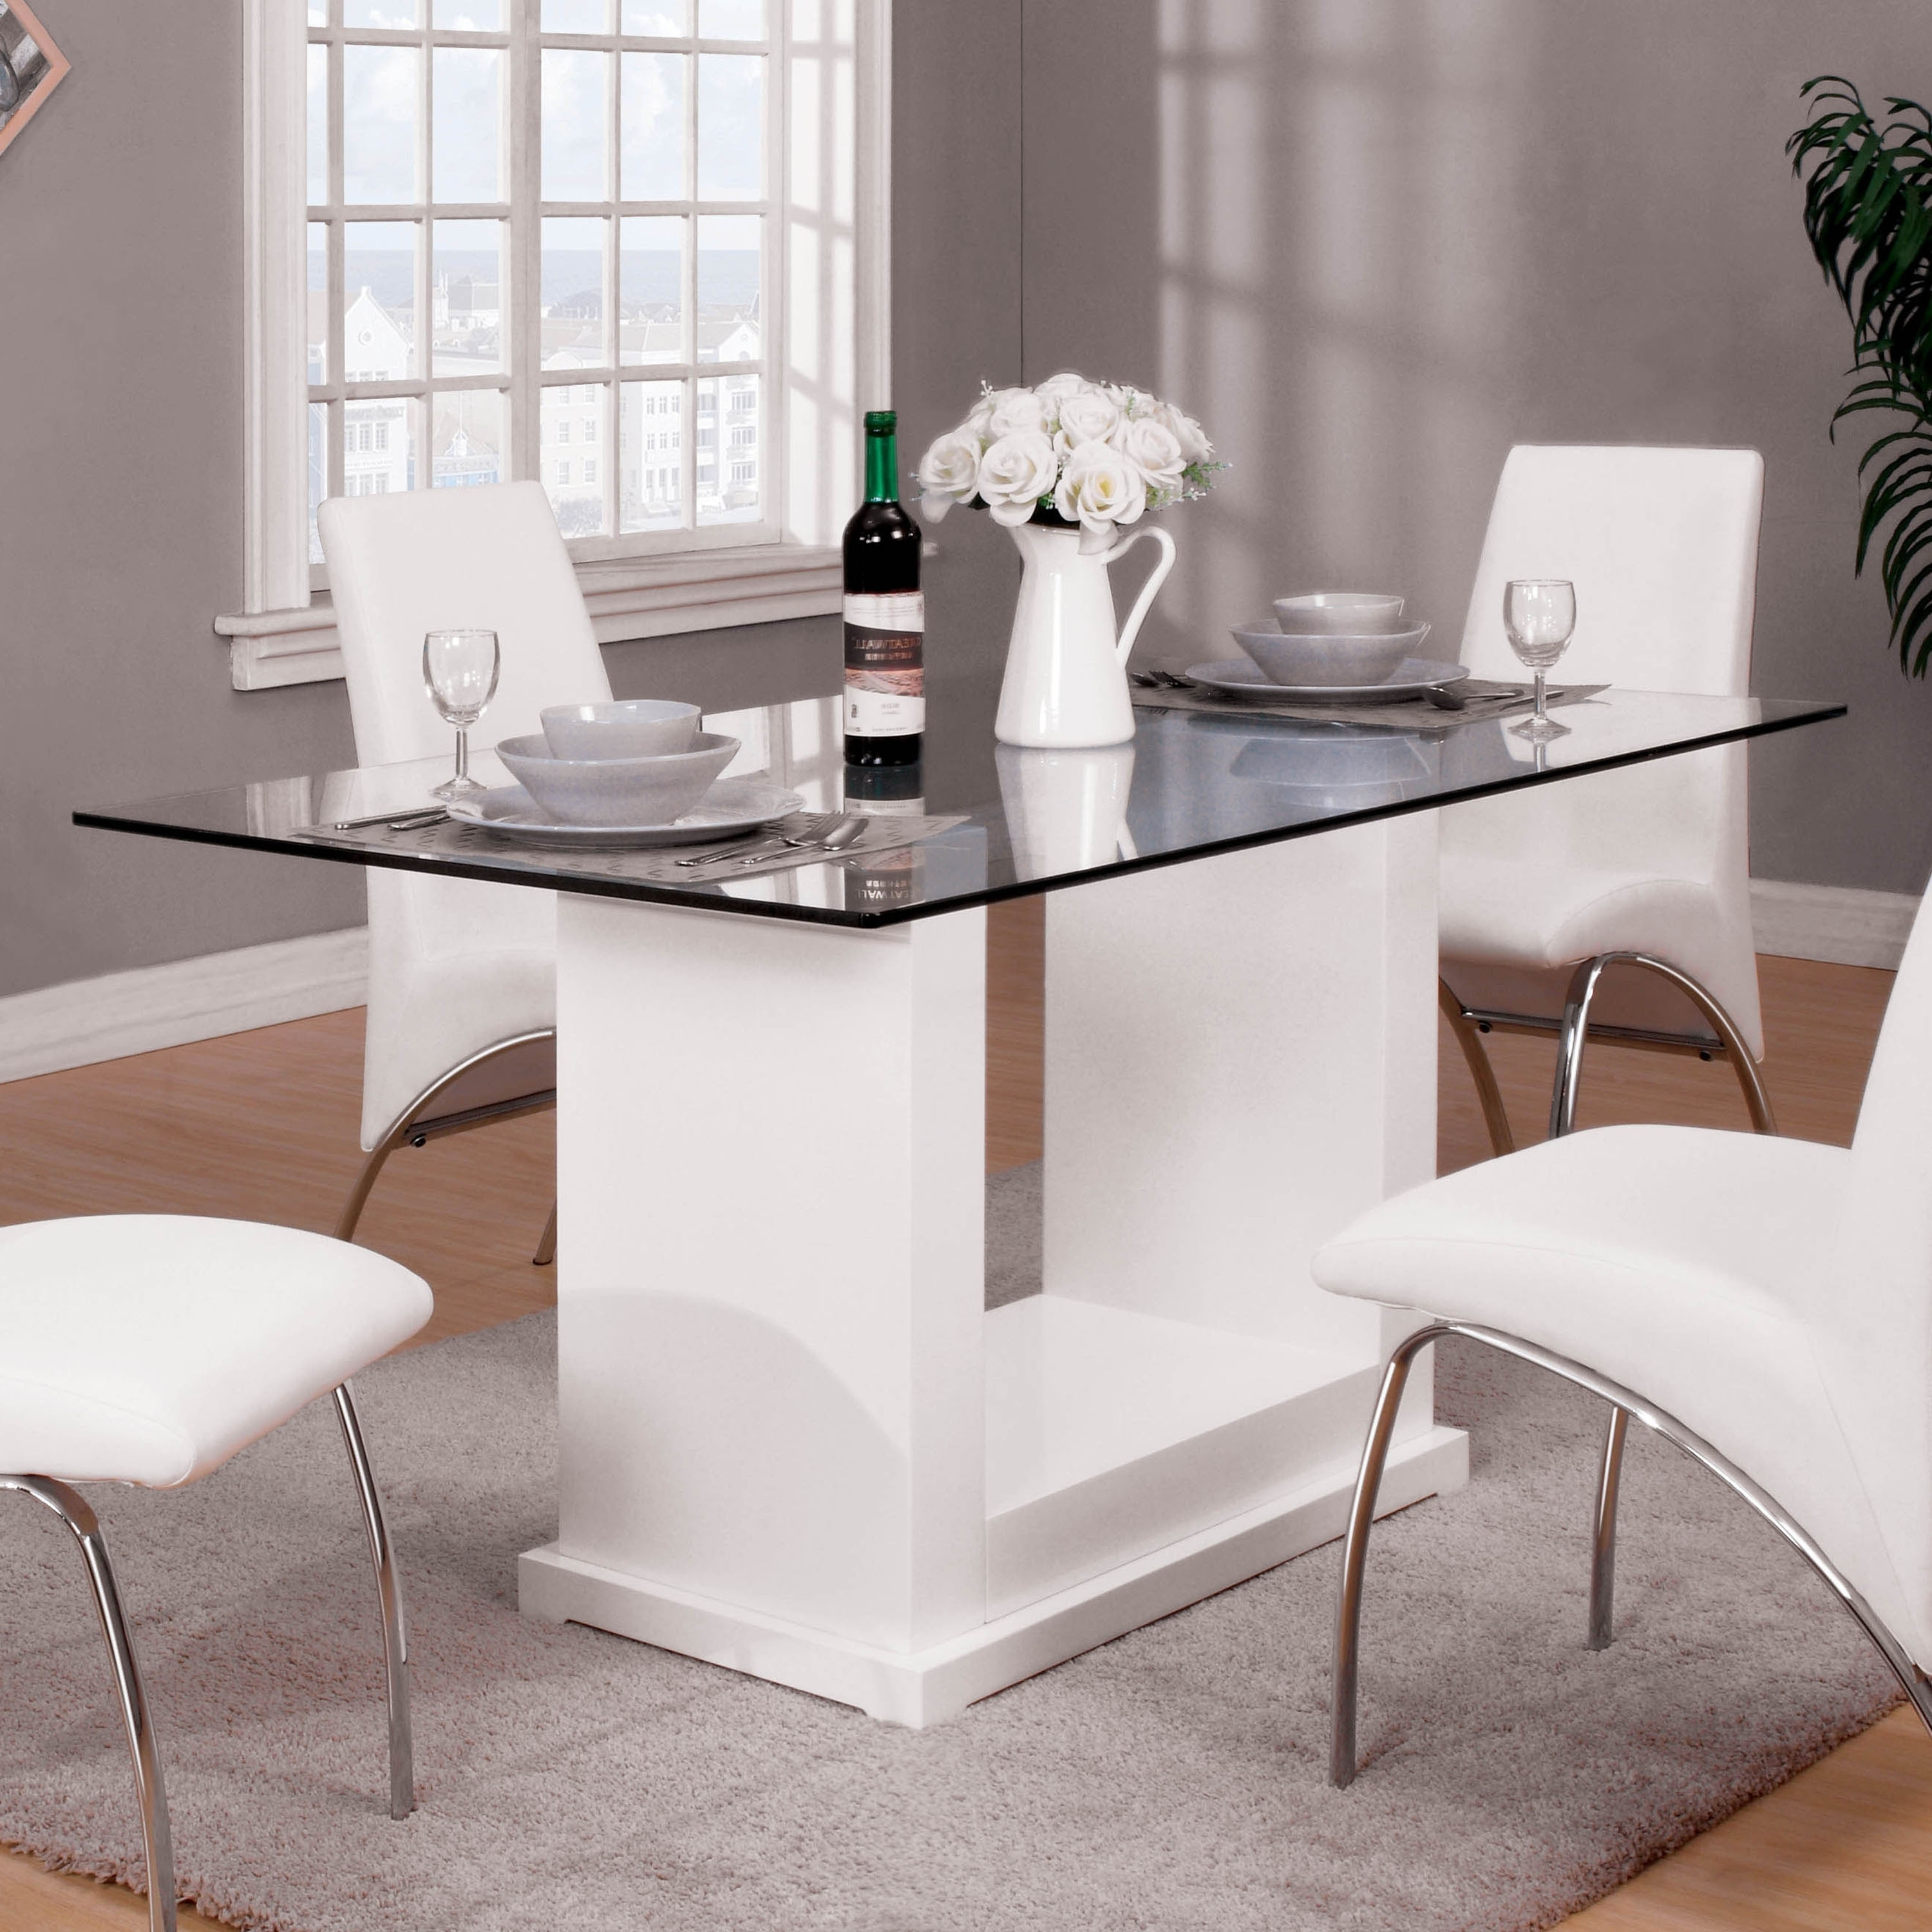 Furniture Of America Jem Contemporary White Wood Dining Table On Sale Overstock 21501079